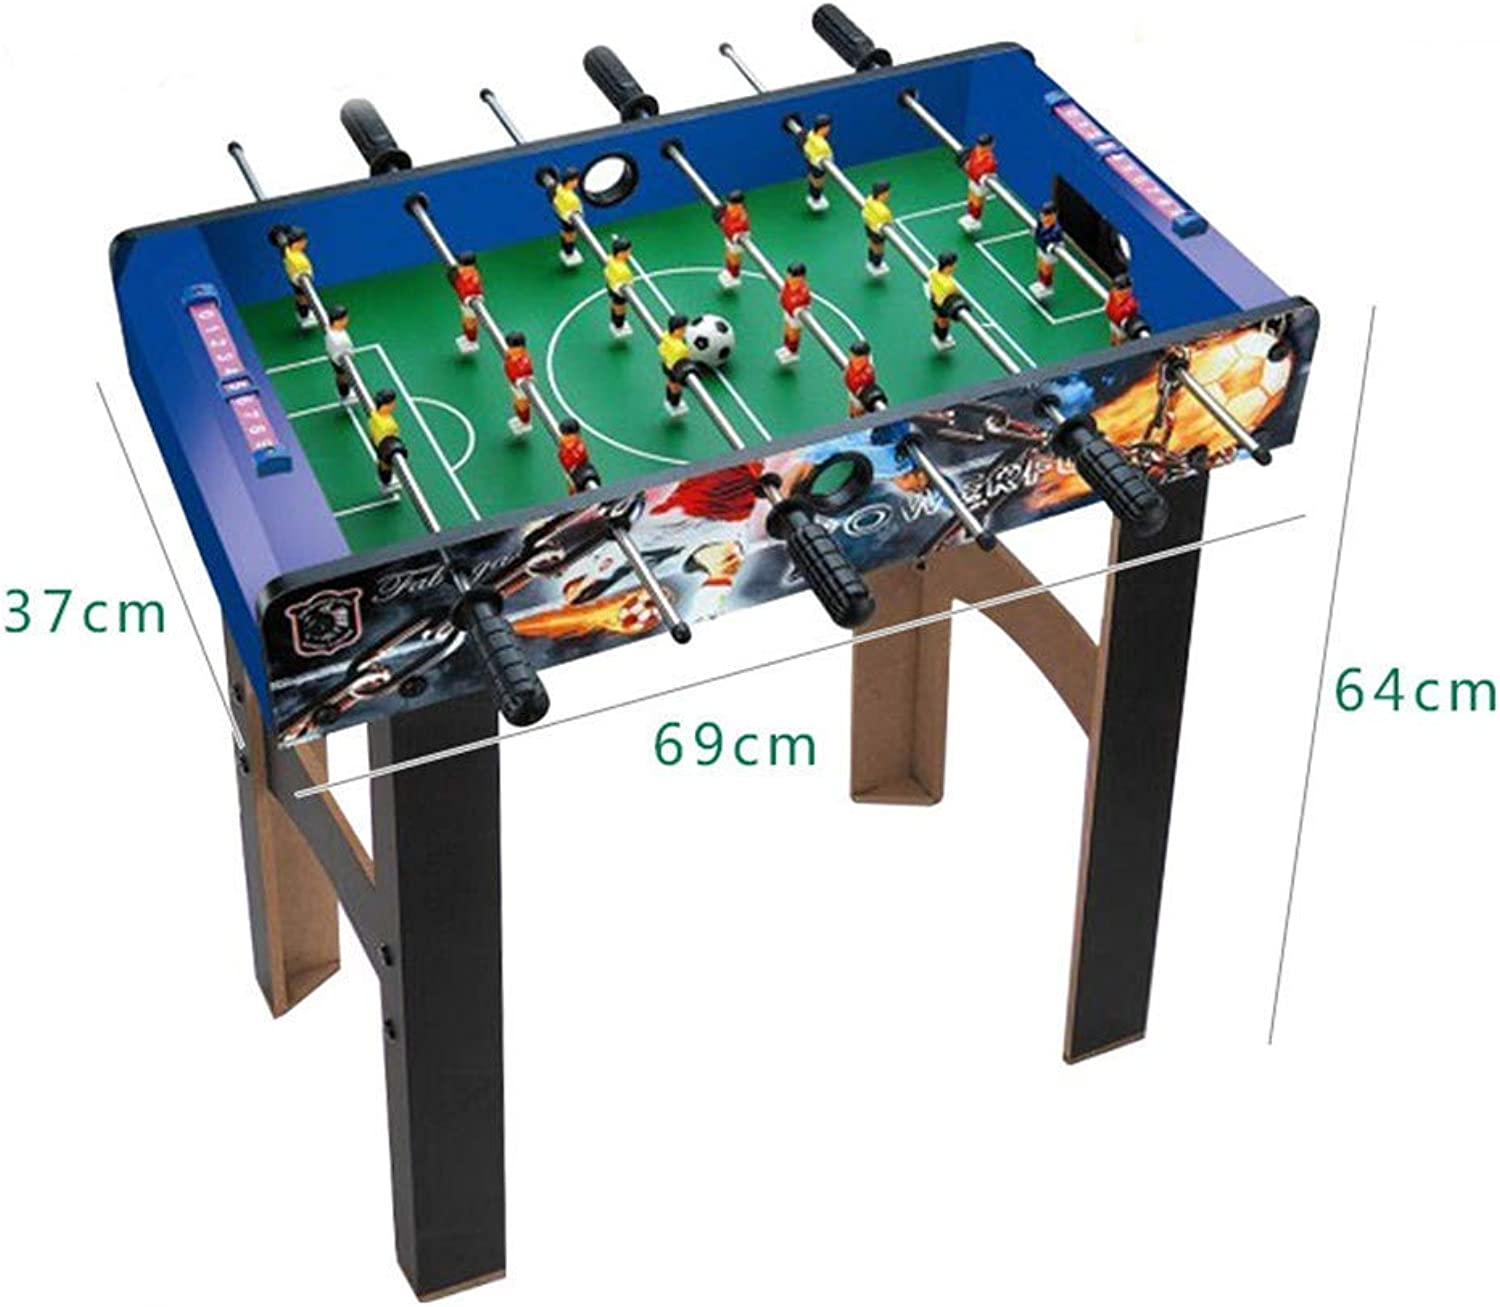 Room Multiplayer Tabletop Foosball Table for Indoor and Outdoor Professional Tables Football Soccer Game